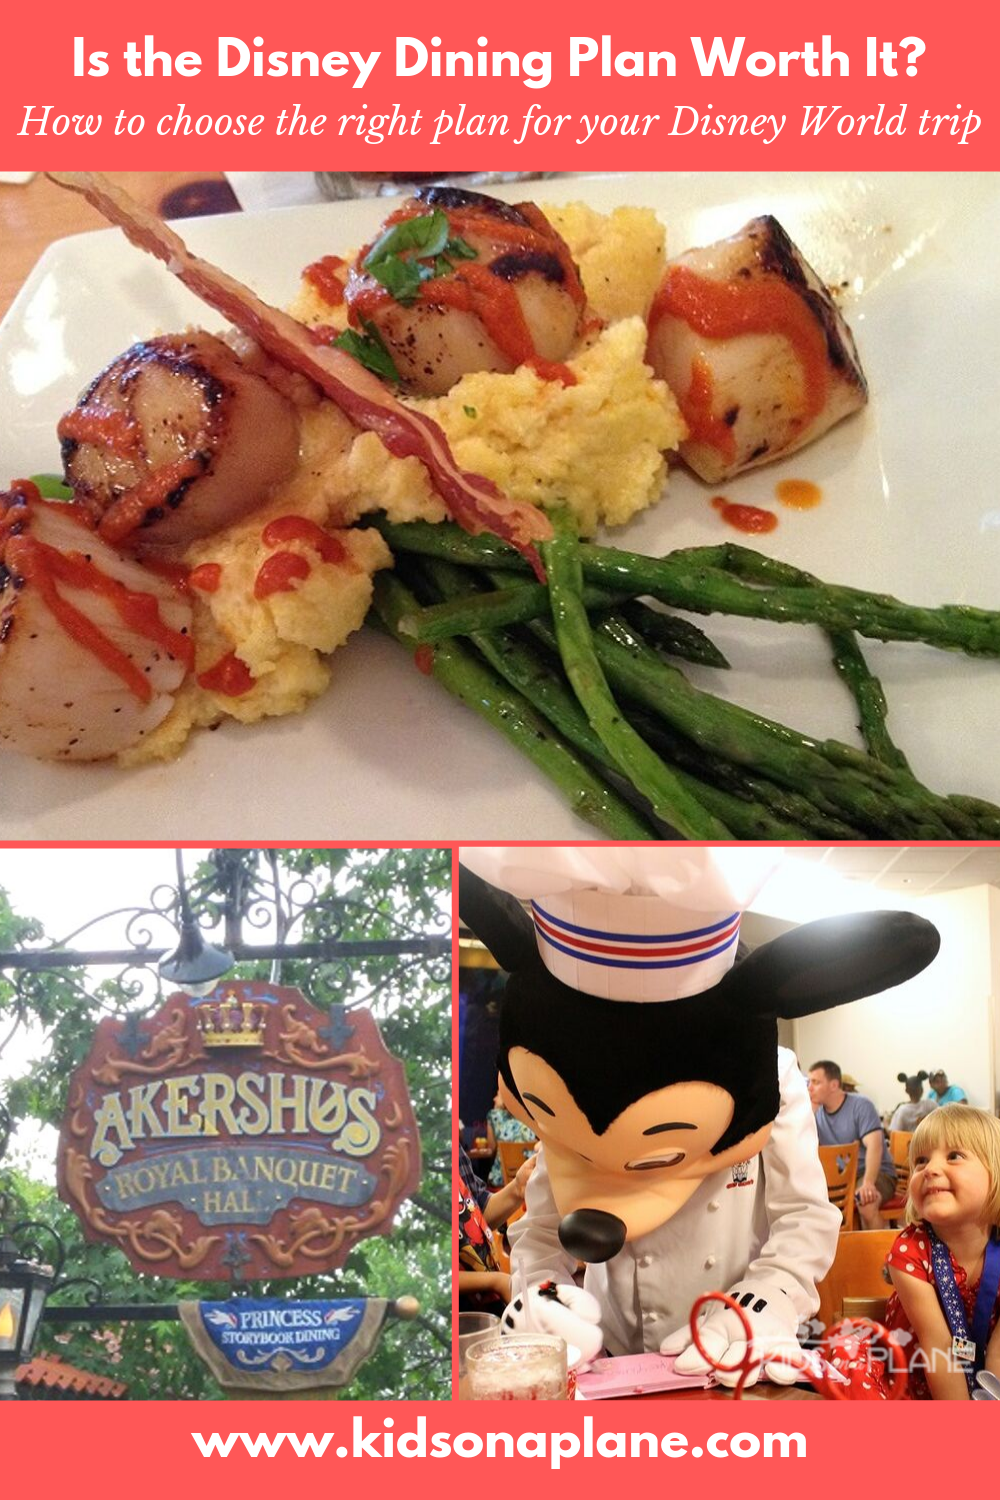 Disney World Dining Plans - Top Tips and Advice - How does it work, how much does it cost and is it worth it